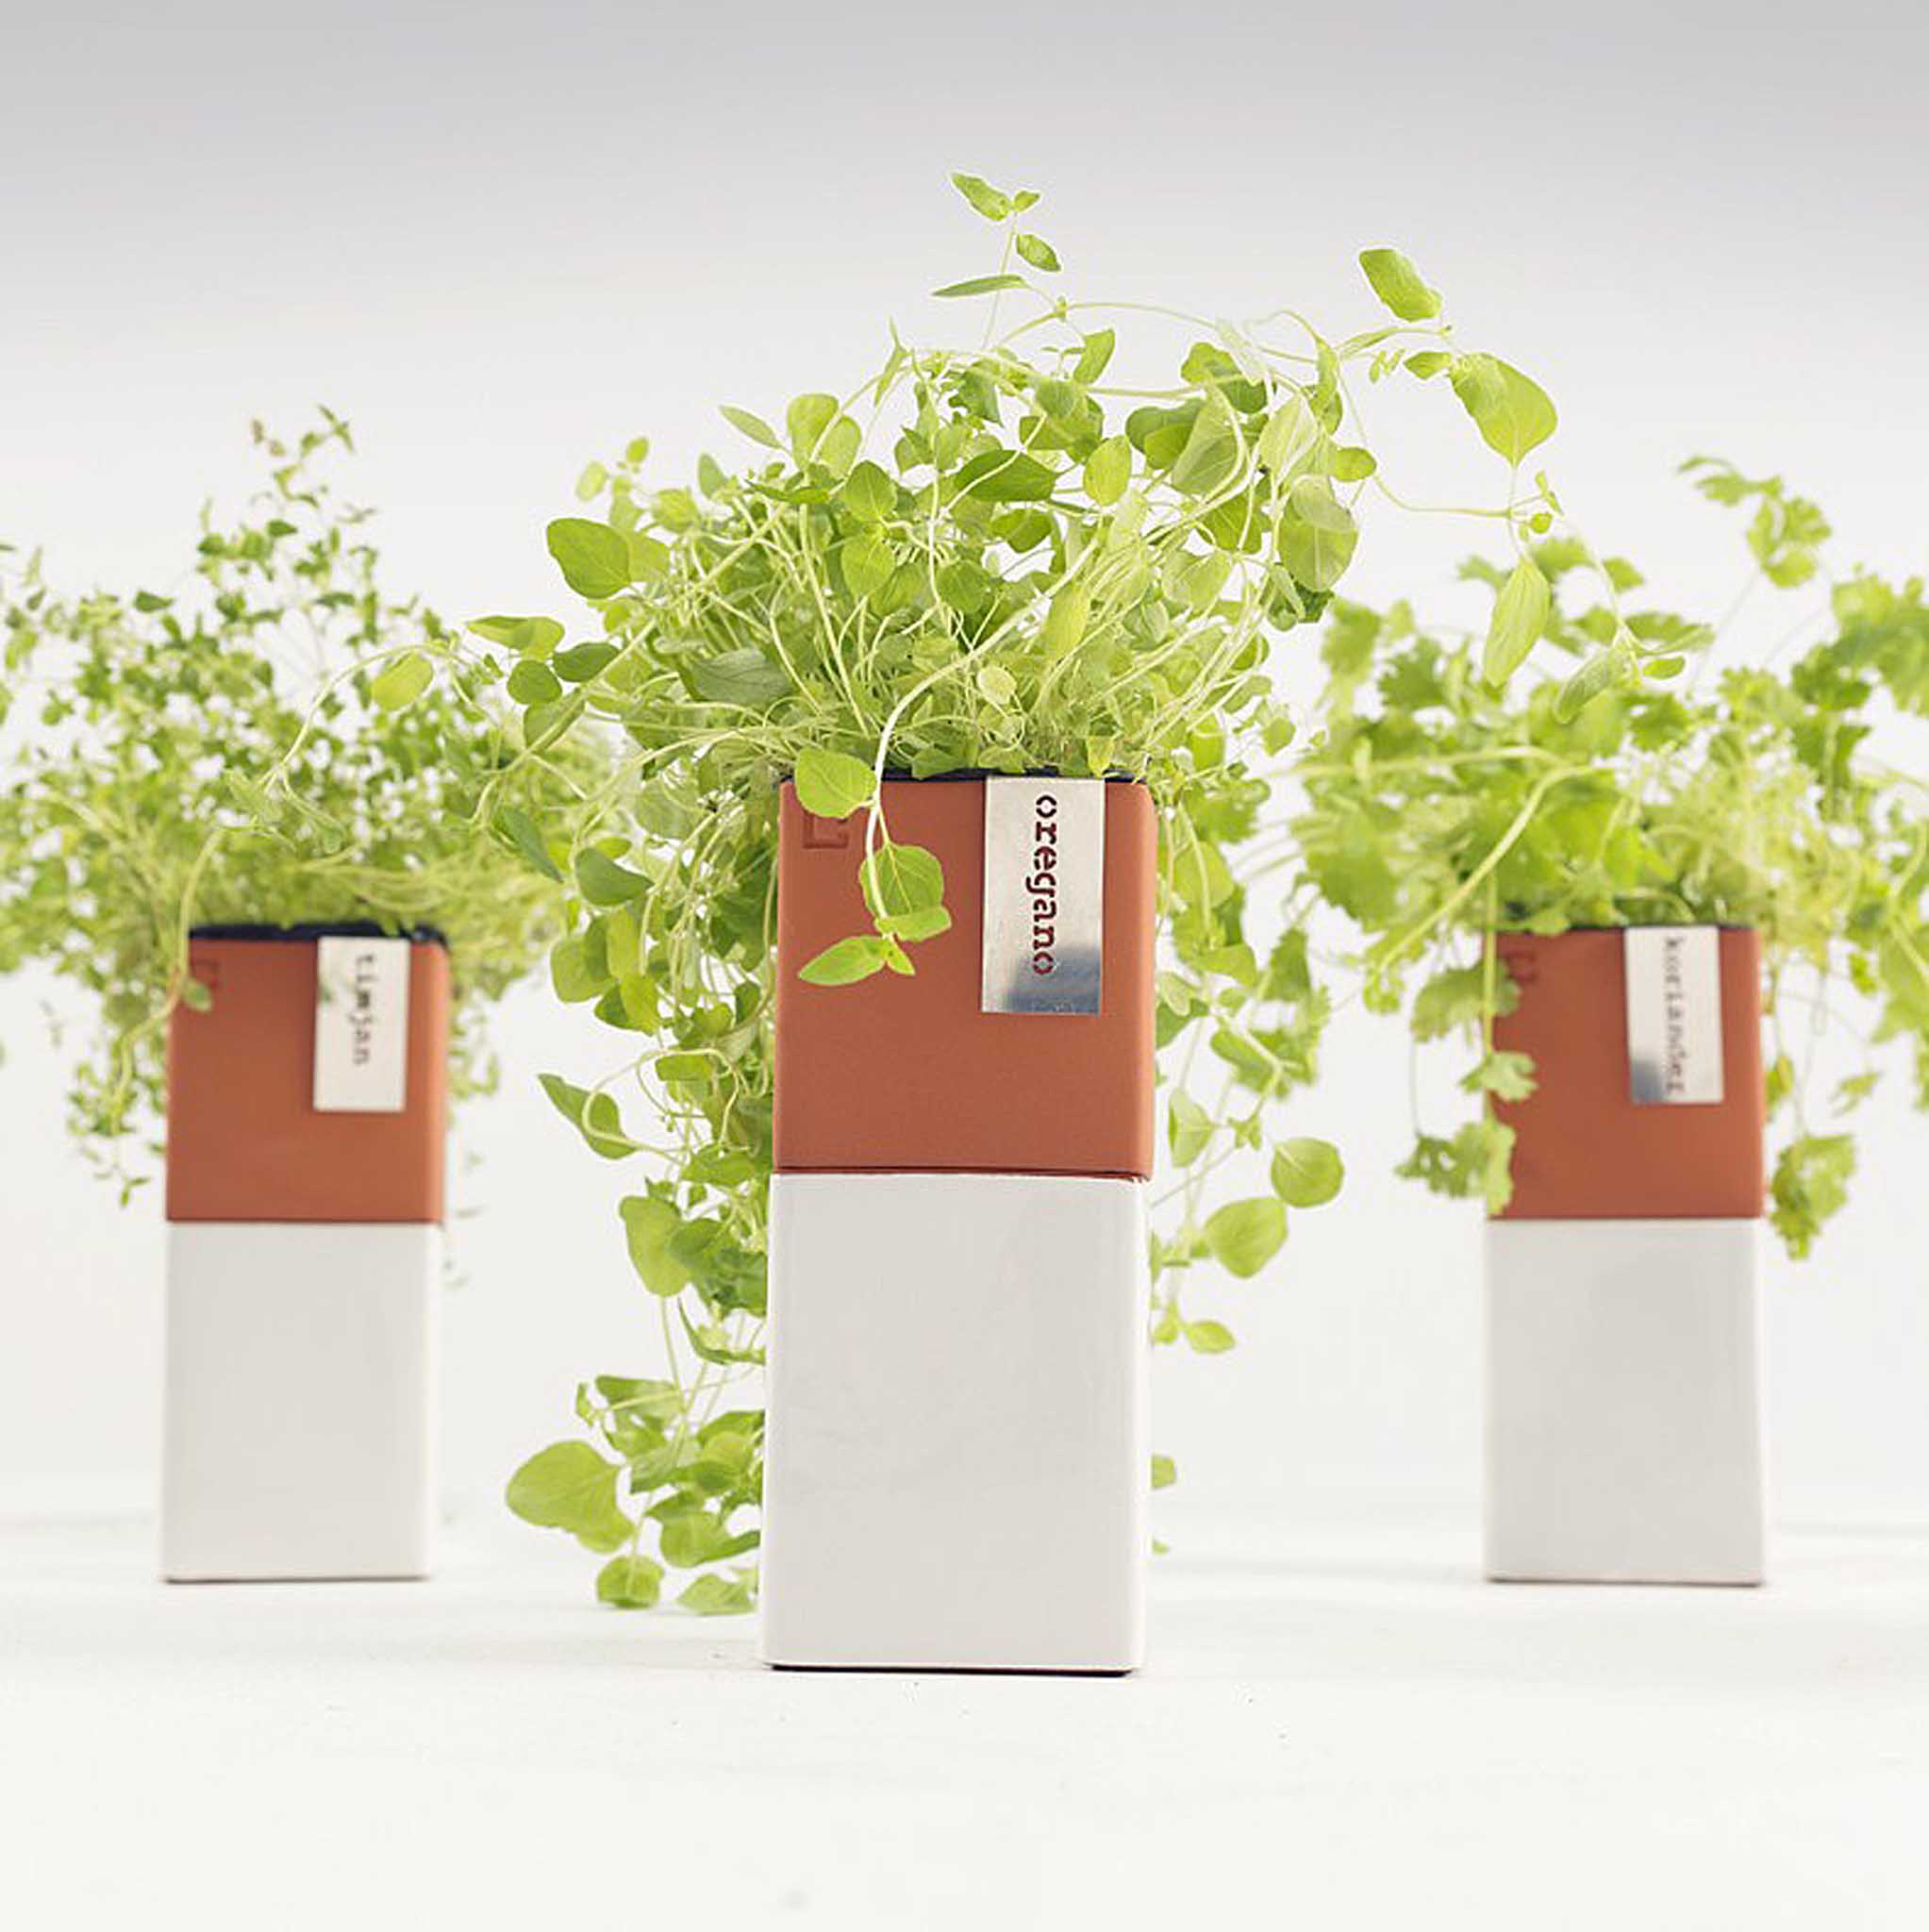 Evergreen is a self-watering pot which is ideal for anyone who doesn't have a green thumb or the time. Evergreen Herb Pot designed to keep herbs fresh.